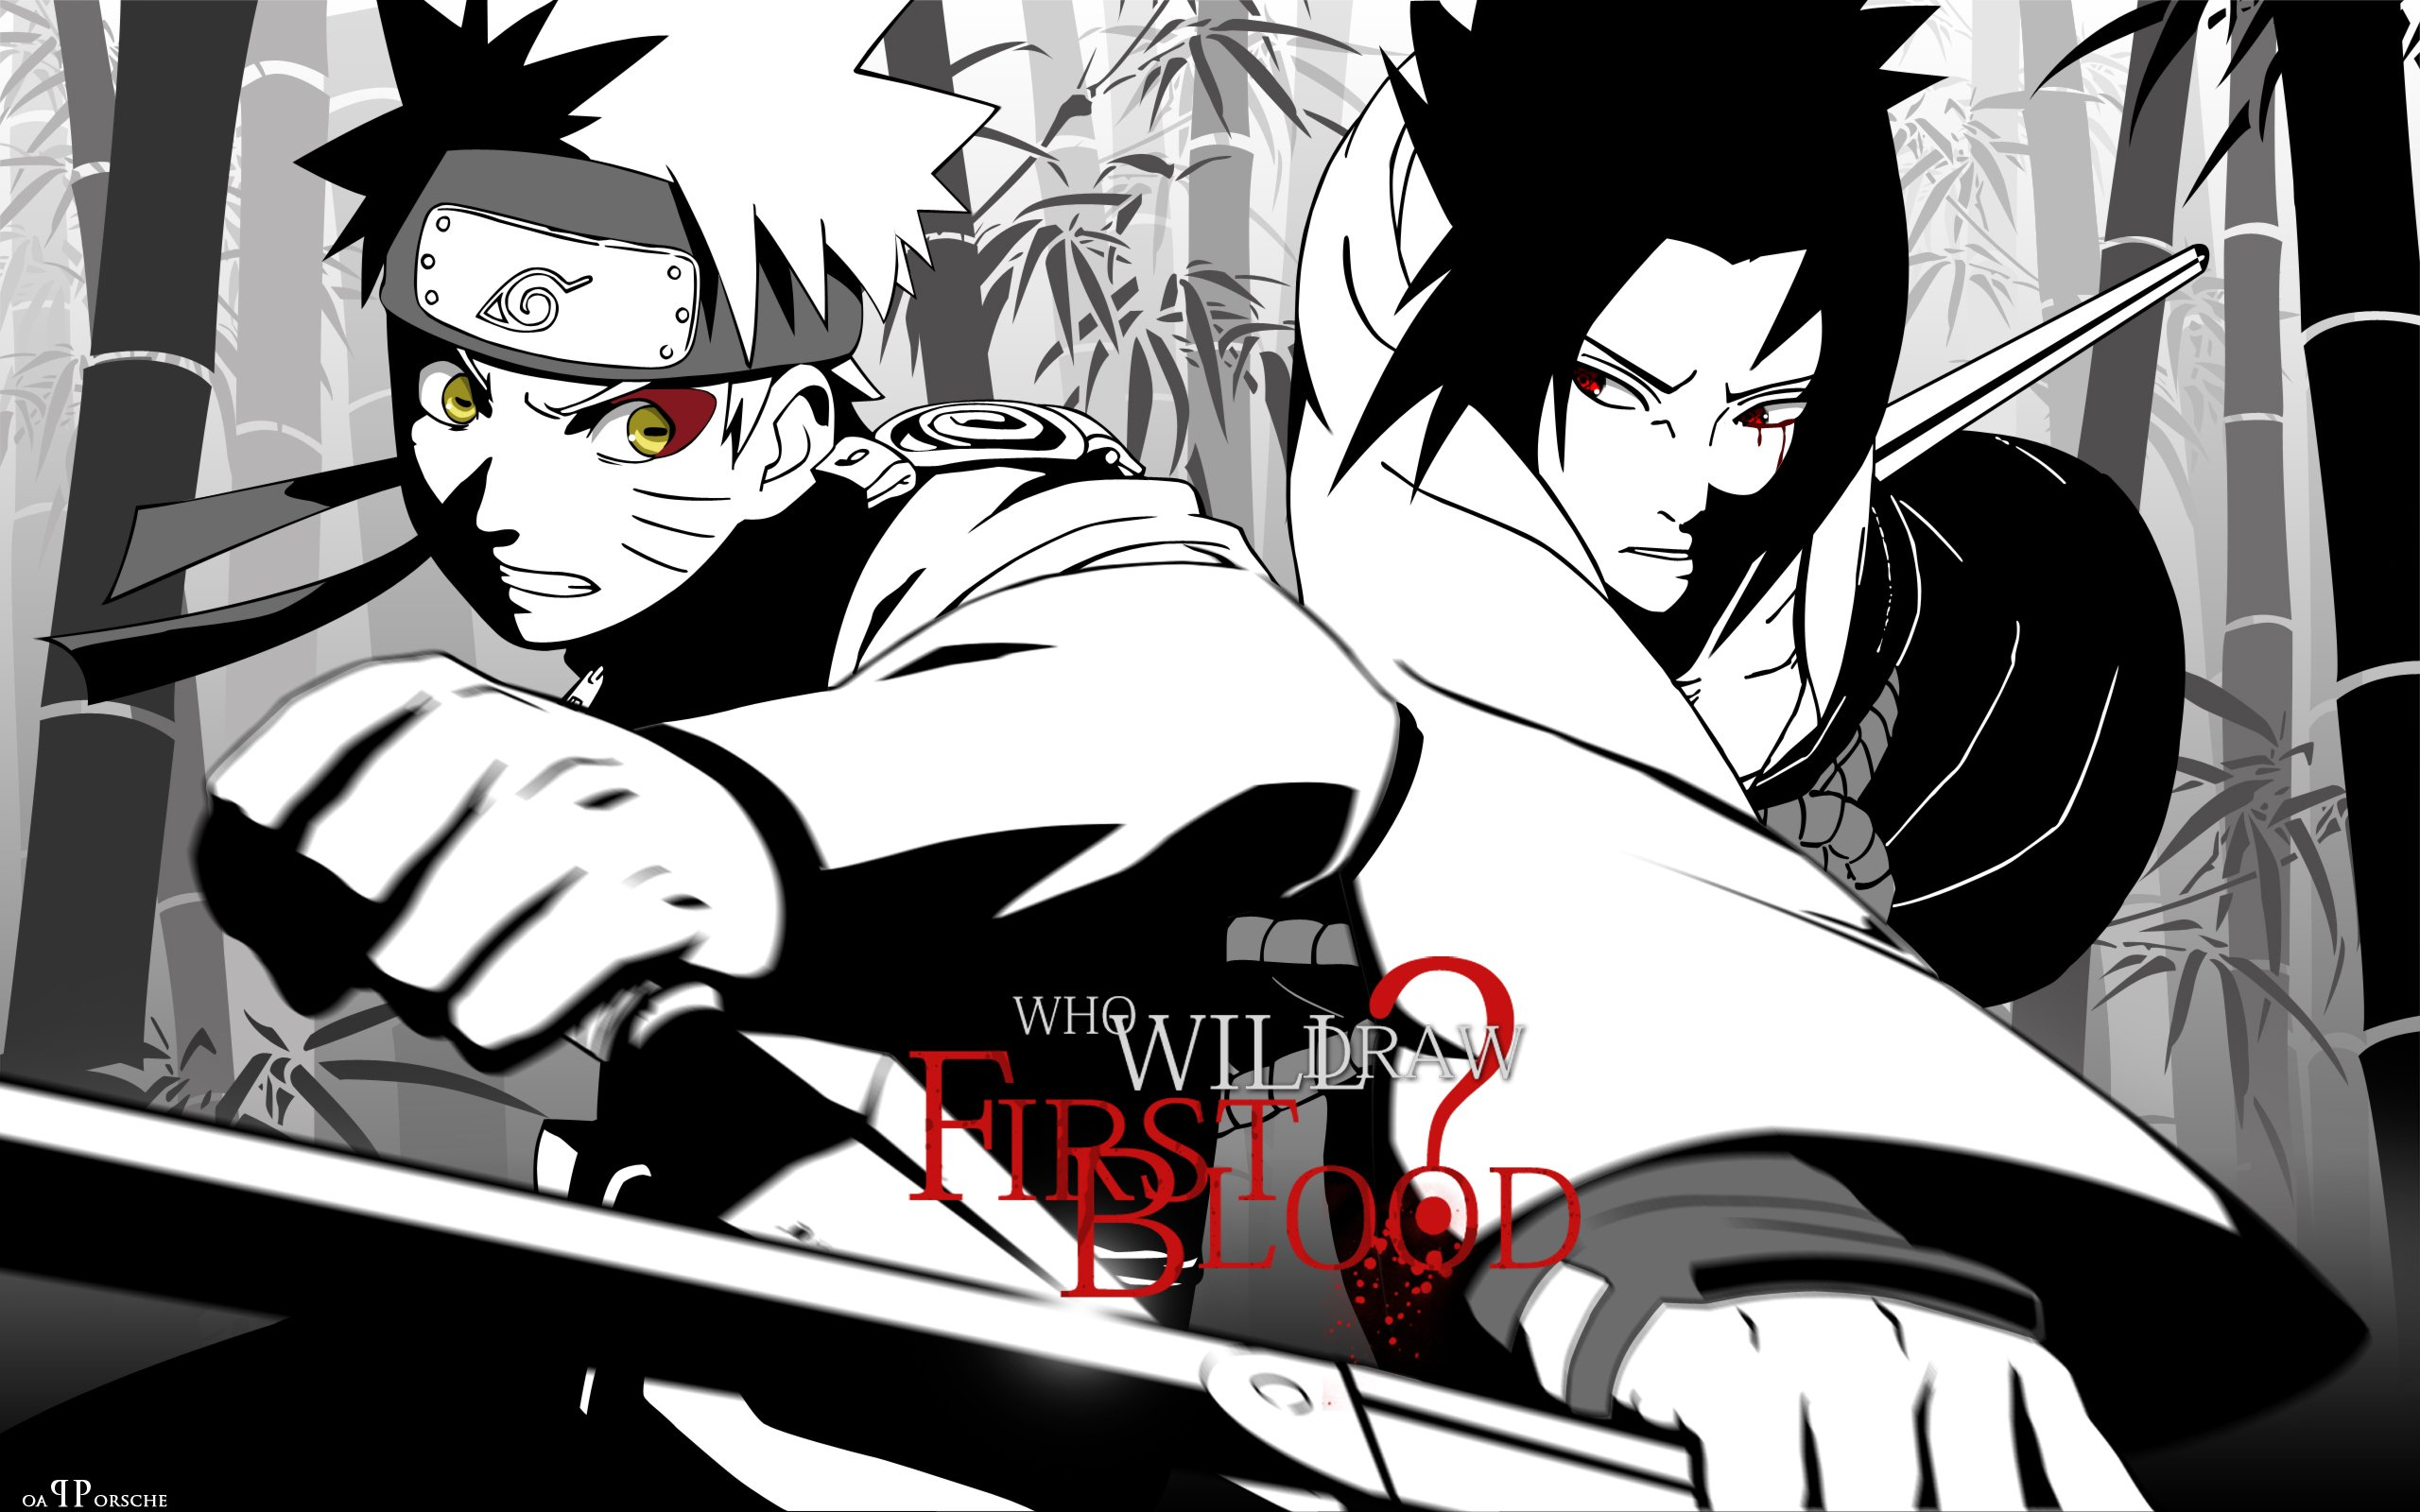 50 ] Naruto Vs Sasuke HD Wallpaper On WallpaperSafari